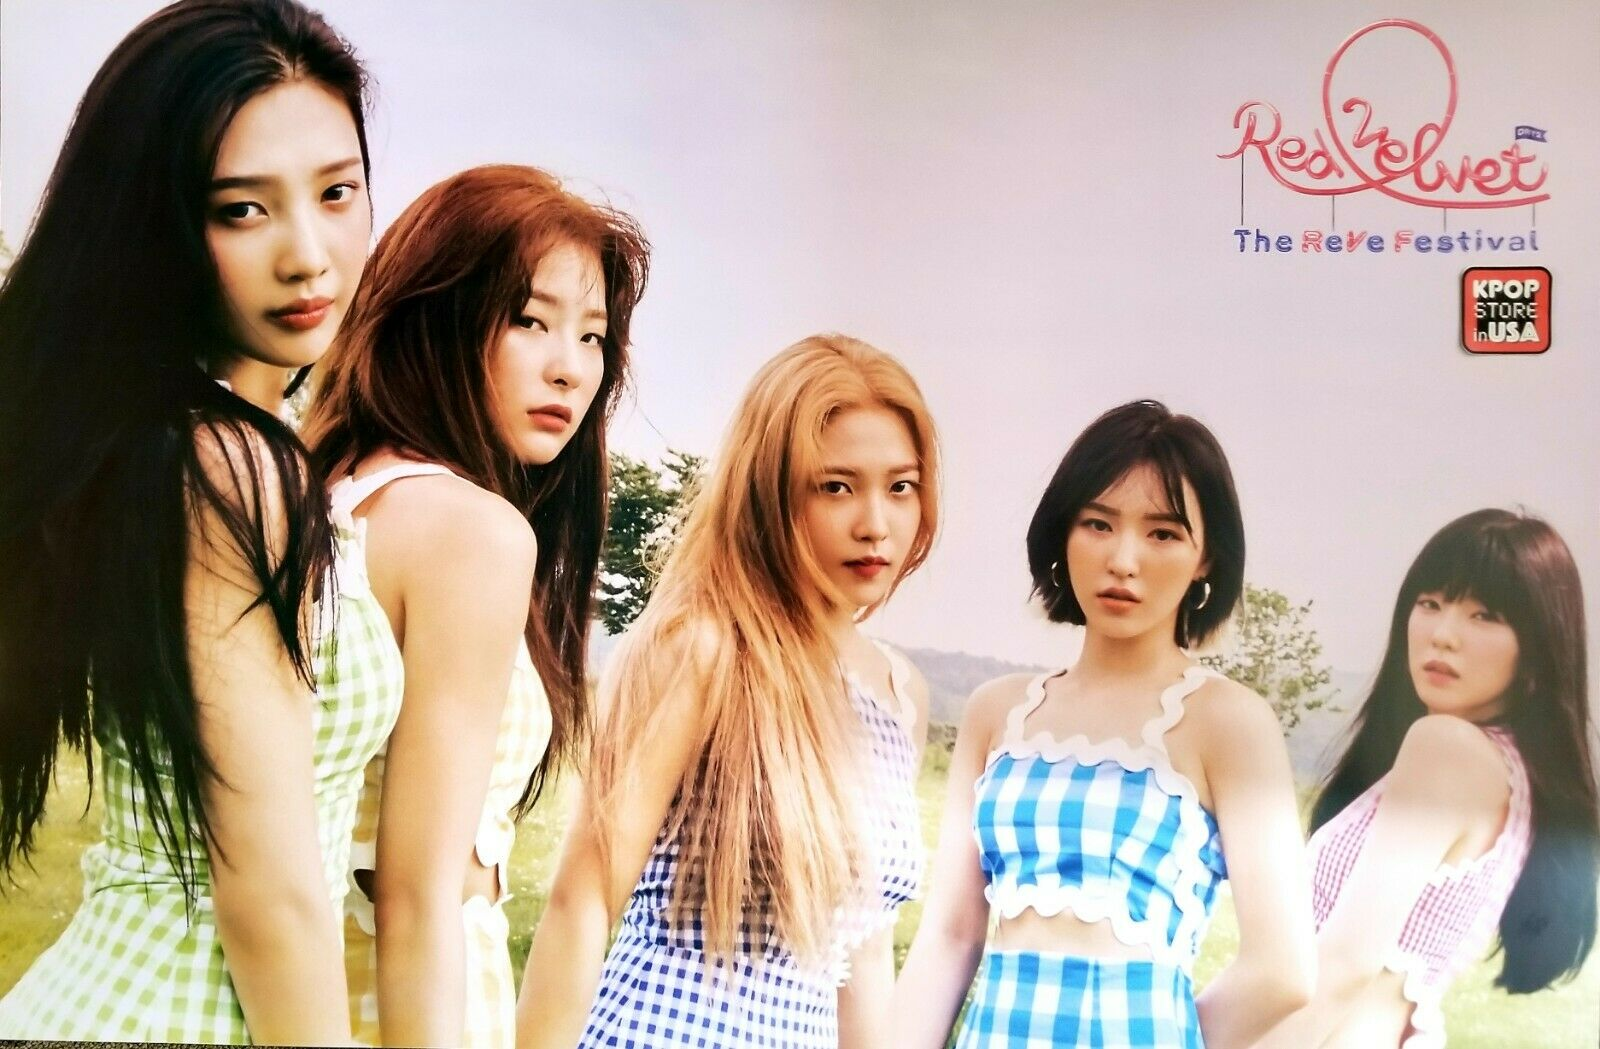 RED VELVET OFFICIAL POSTER